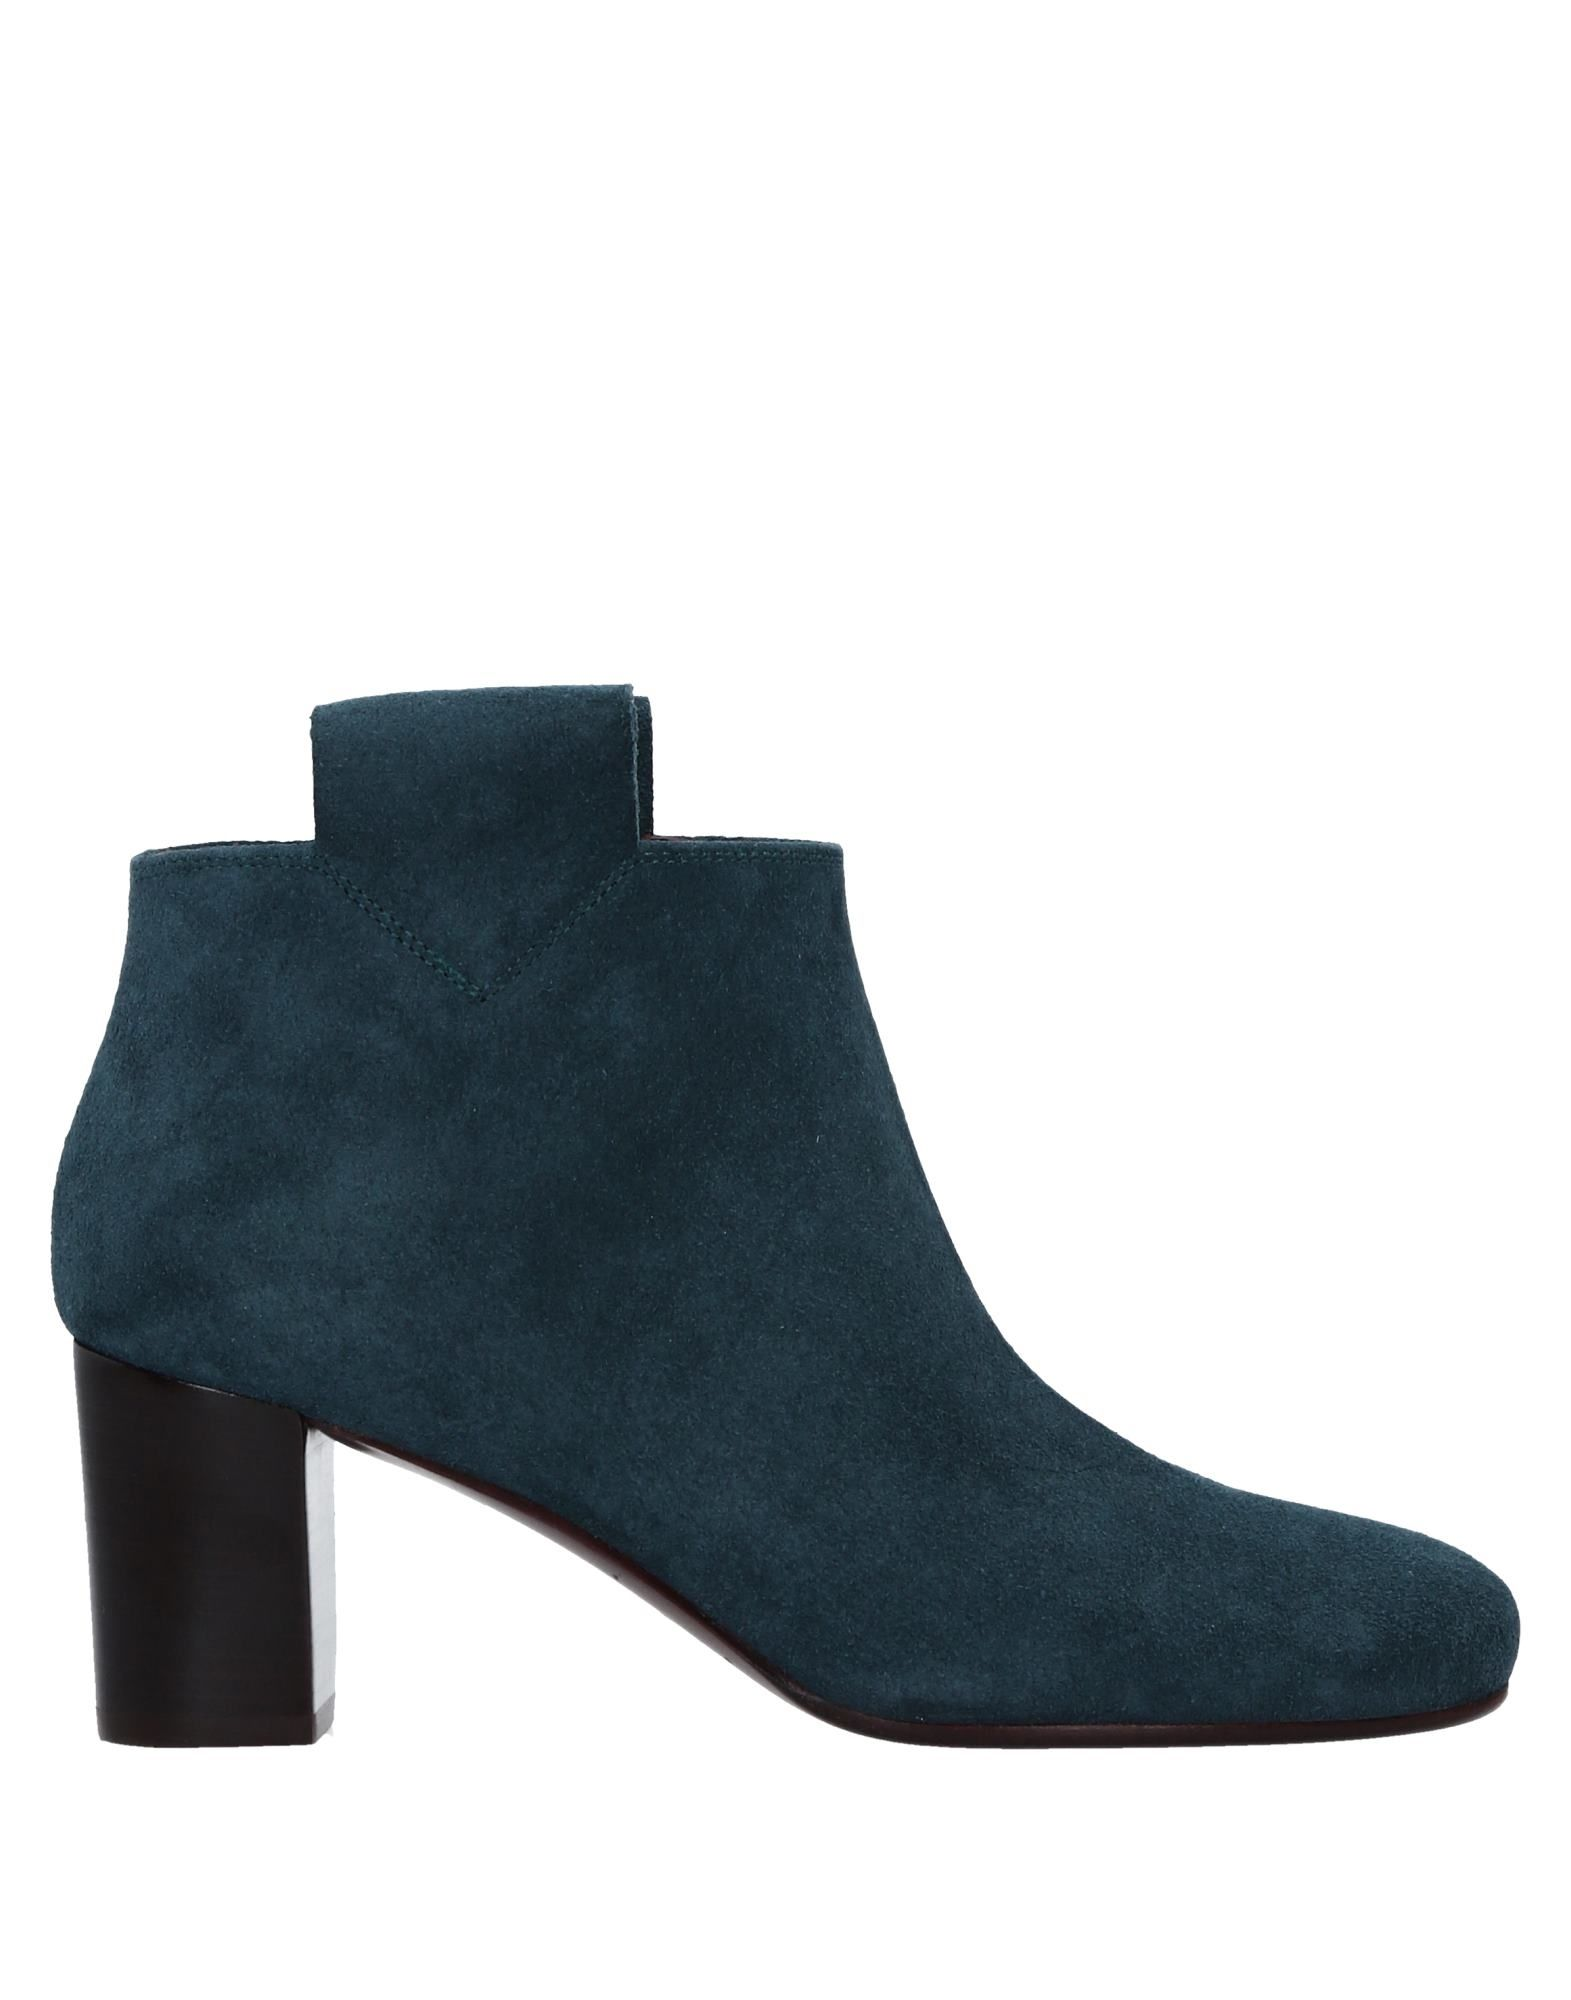 AVRIL GAU Ankle Boots in Deep Jade